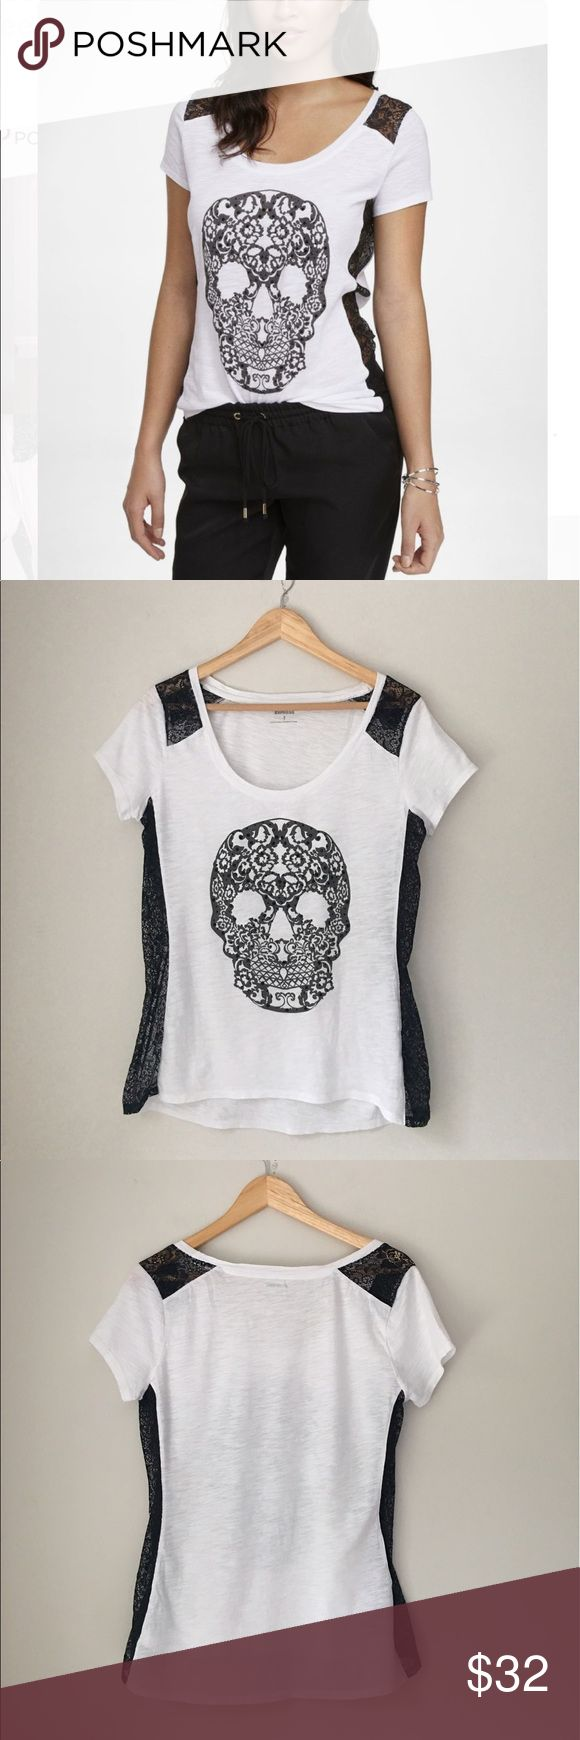 Express Sequin & Lace Skull Tee Size Medium Lovin' this! Lace & Sequin black and white skull tee by Express. Size Medium. EUC. Express Tops Tees - Short Sleeve